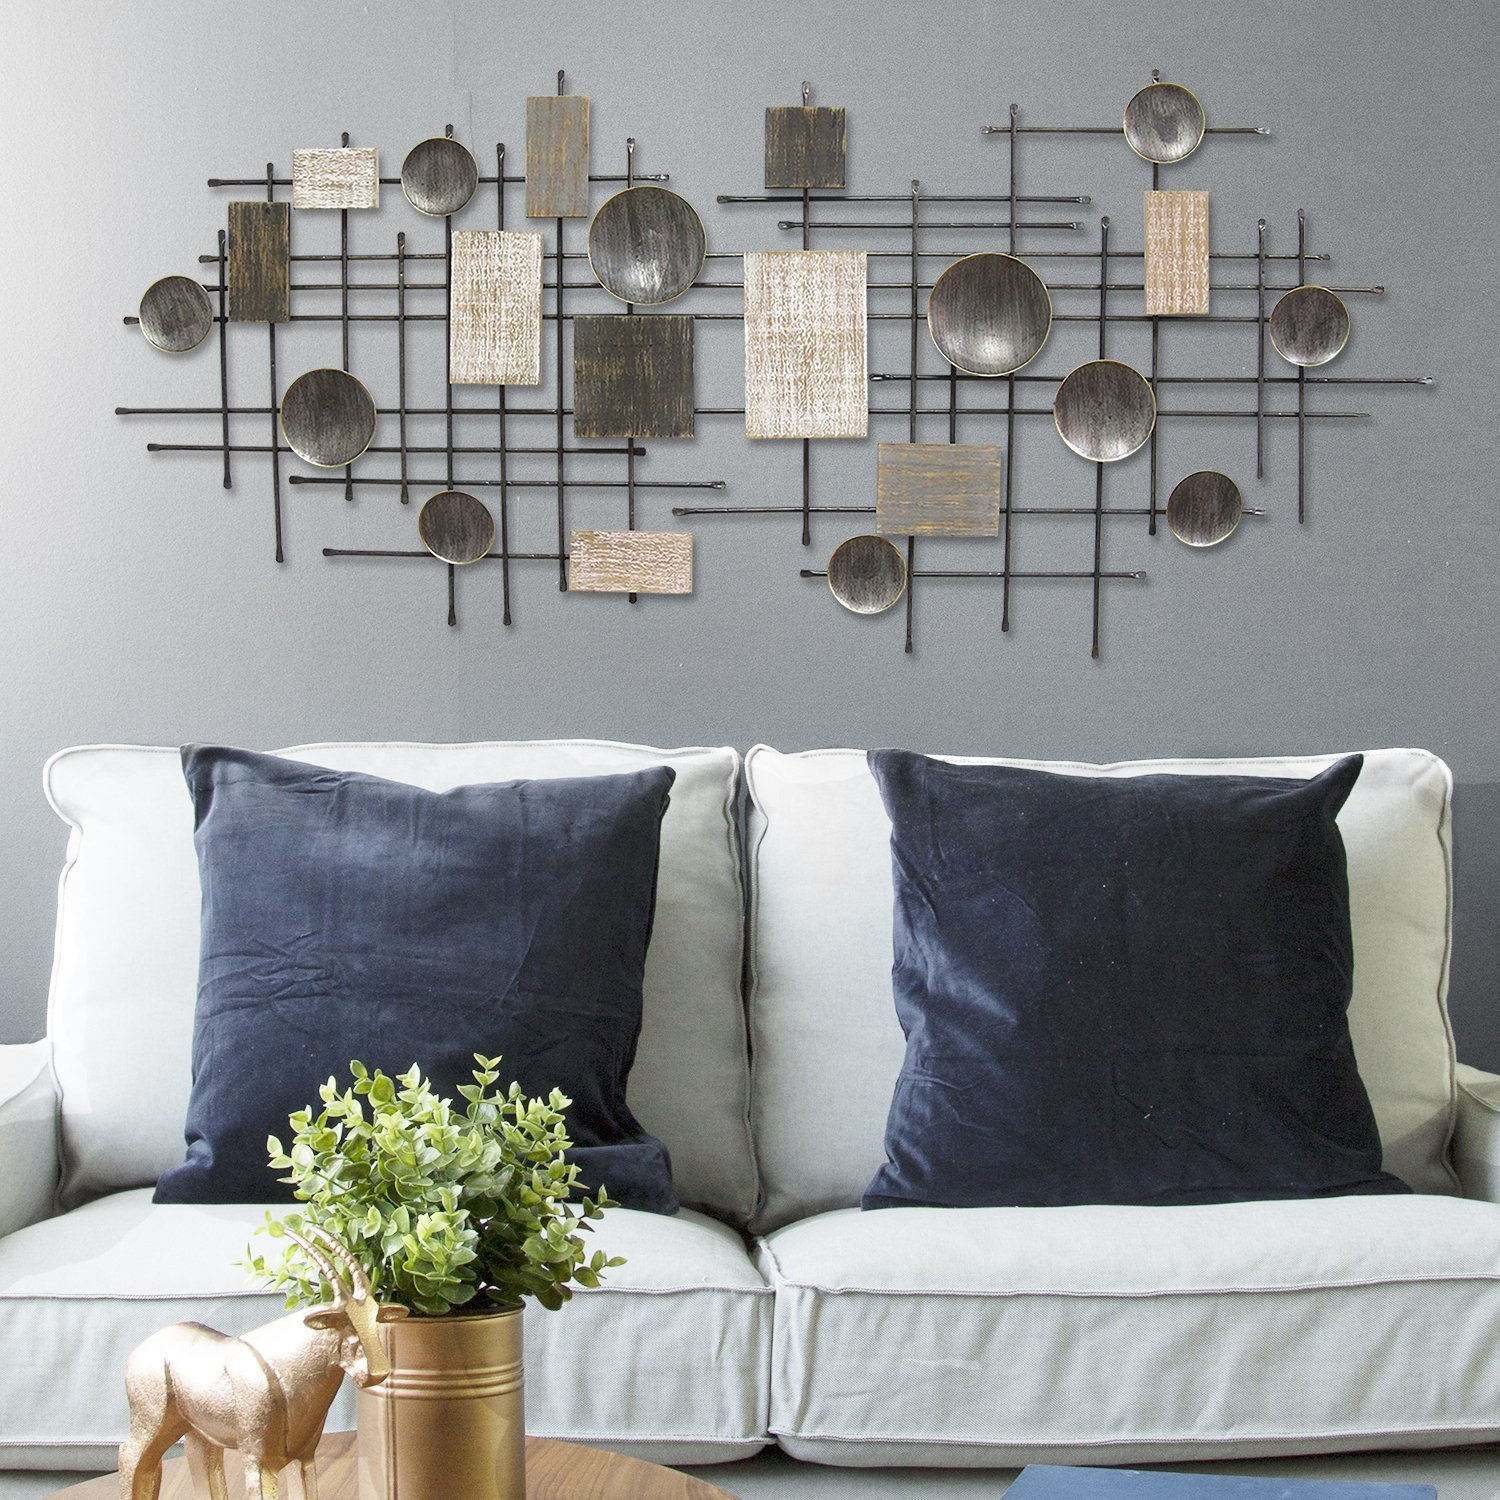 Large Modern Industrial Wall Décor Throughout Large Modern Industrial Wall Decor (Photo 1 of 30)